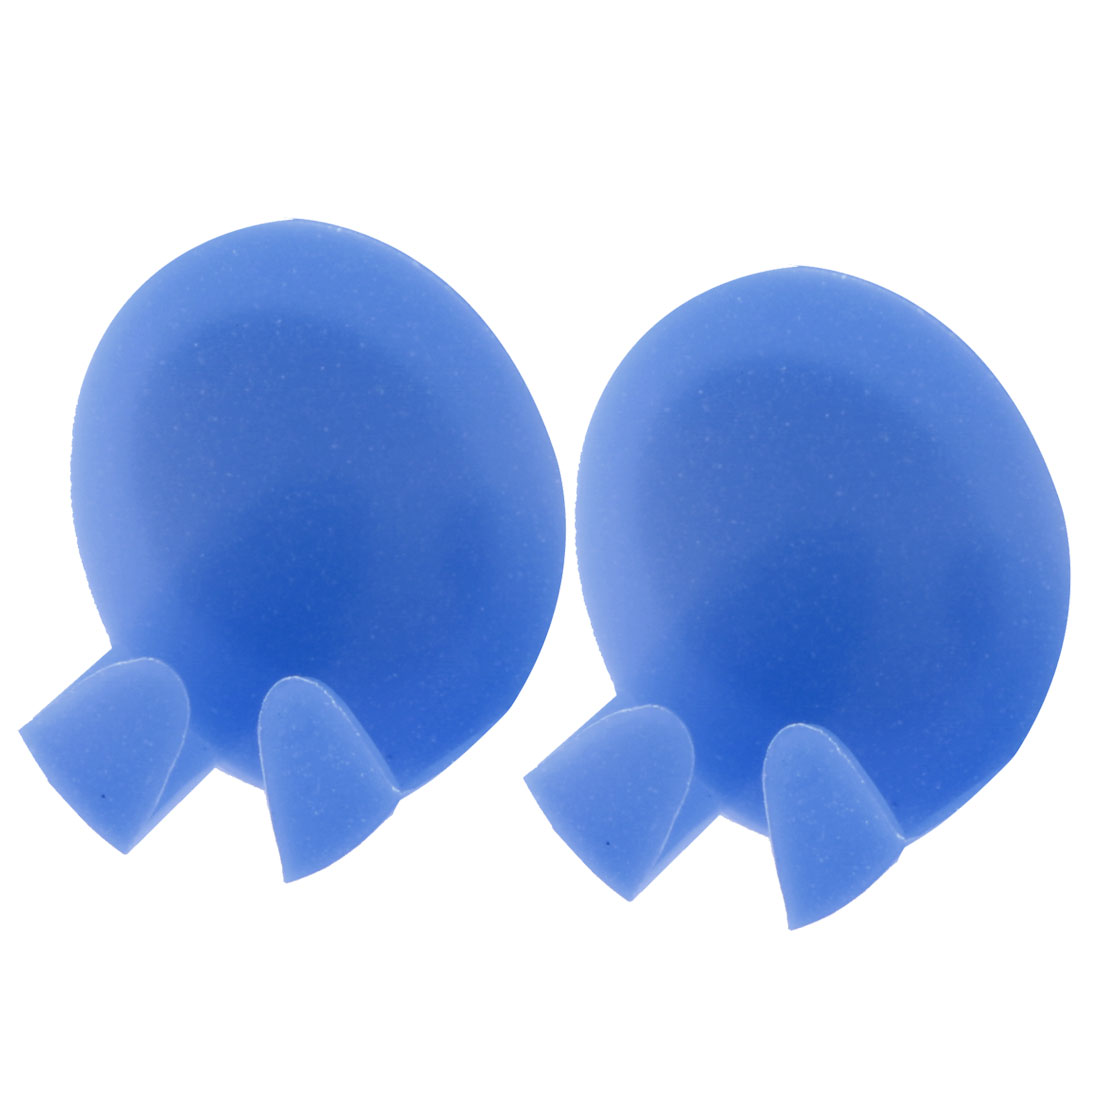 Plastic Oval Shaped Self Adhesive Electrical Connector Wall Hooks Blue 2 Pcs